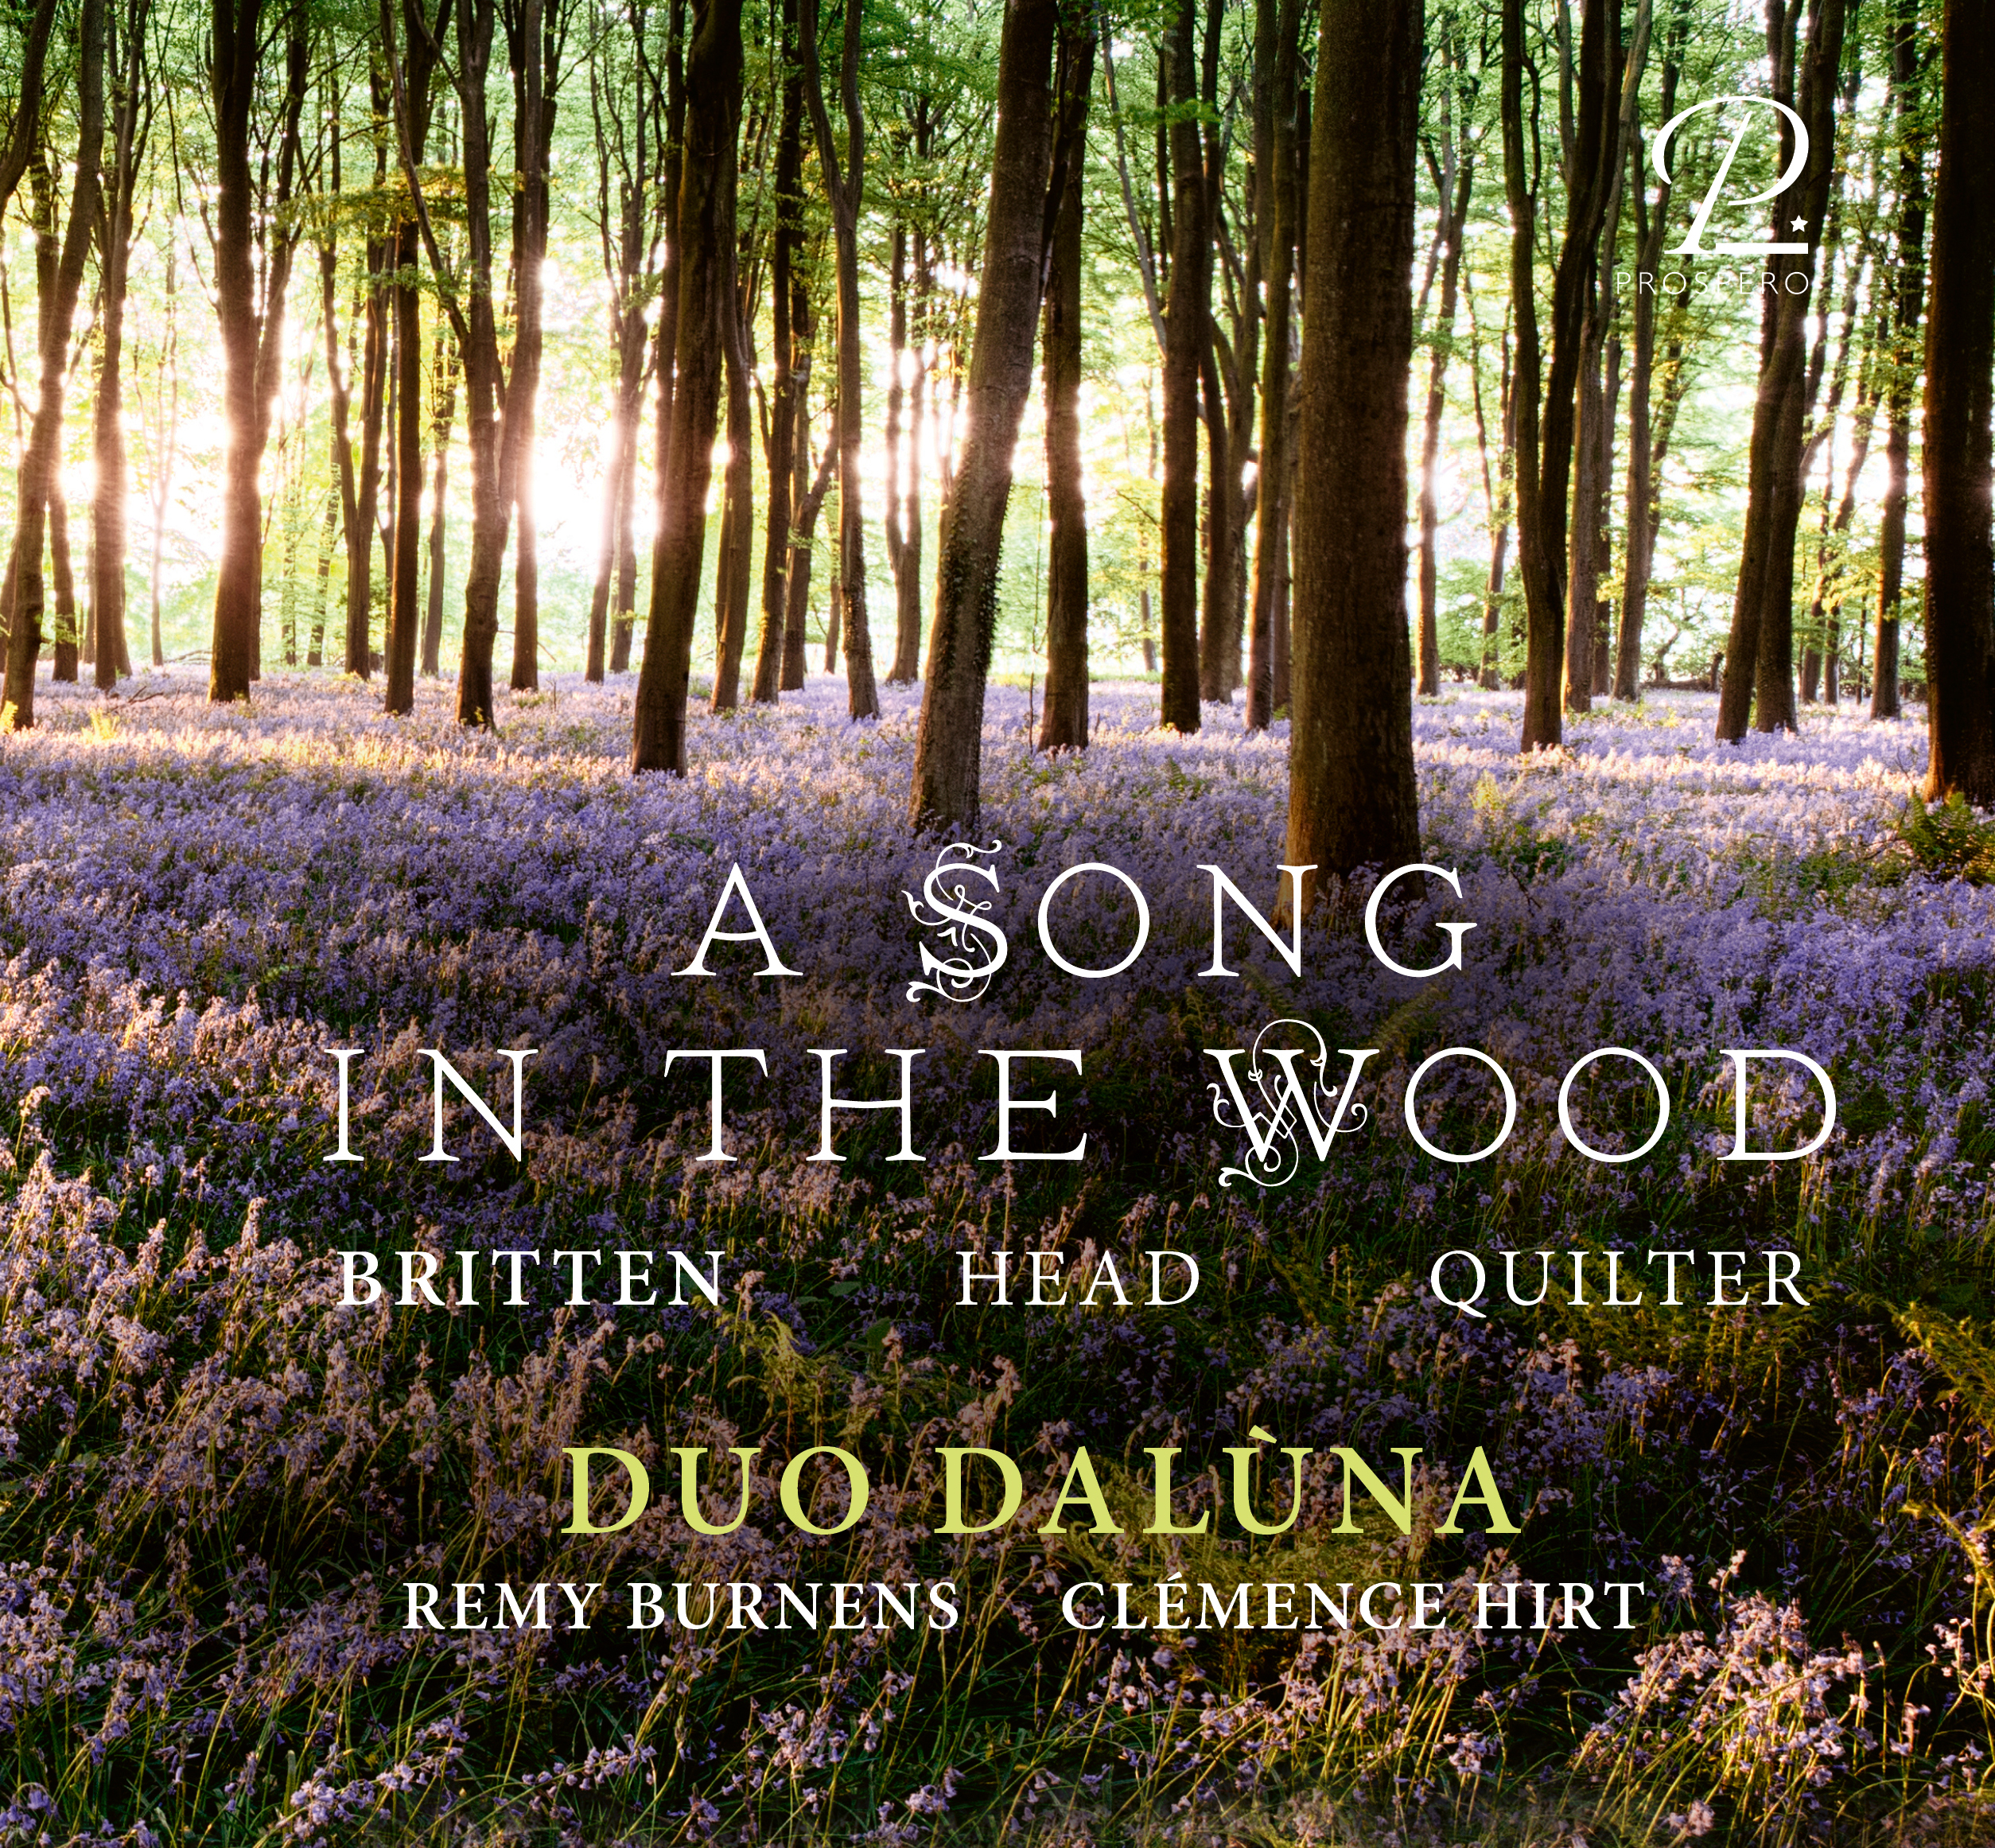 A Song in the Wood - Cover Art